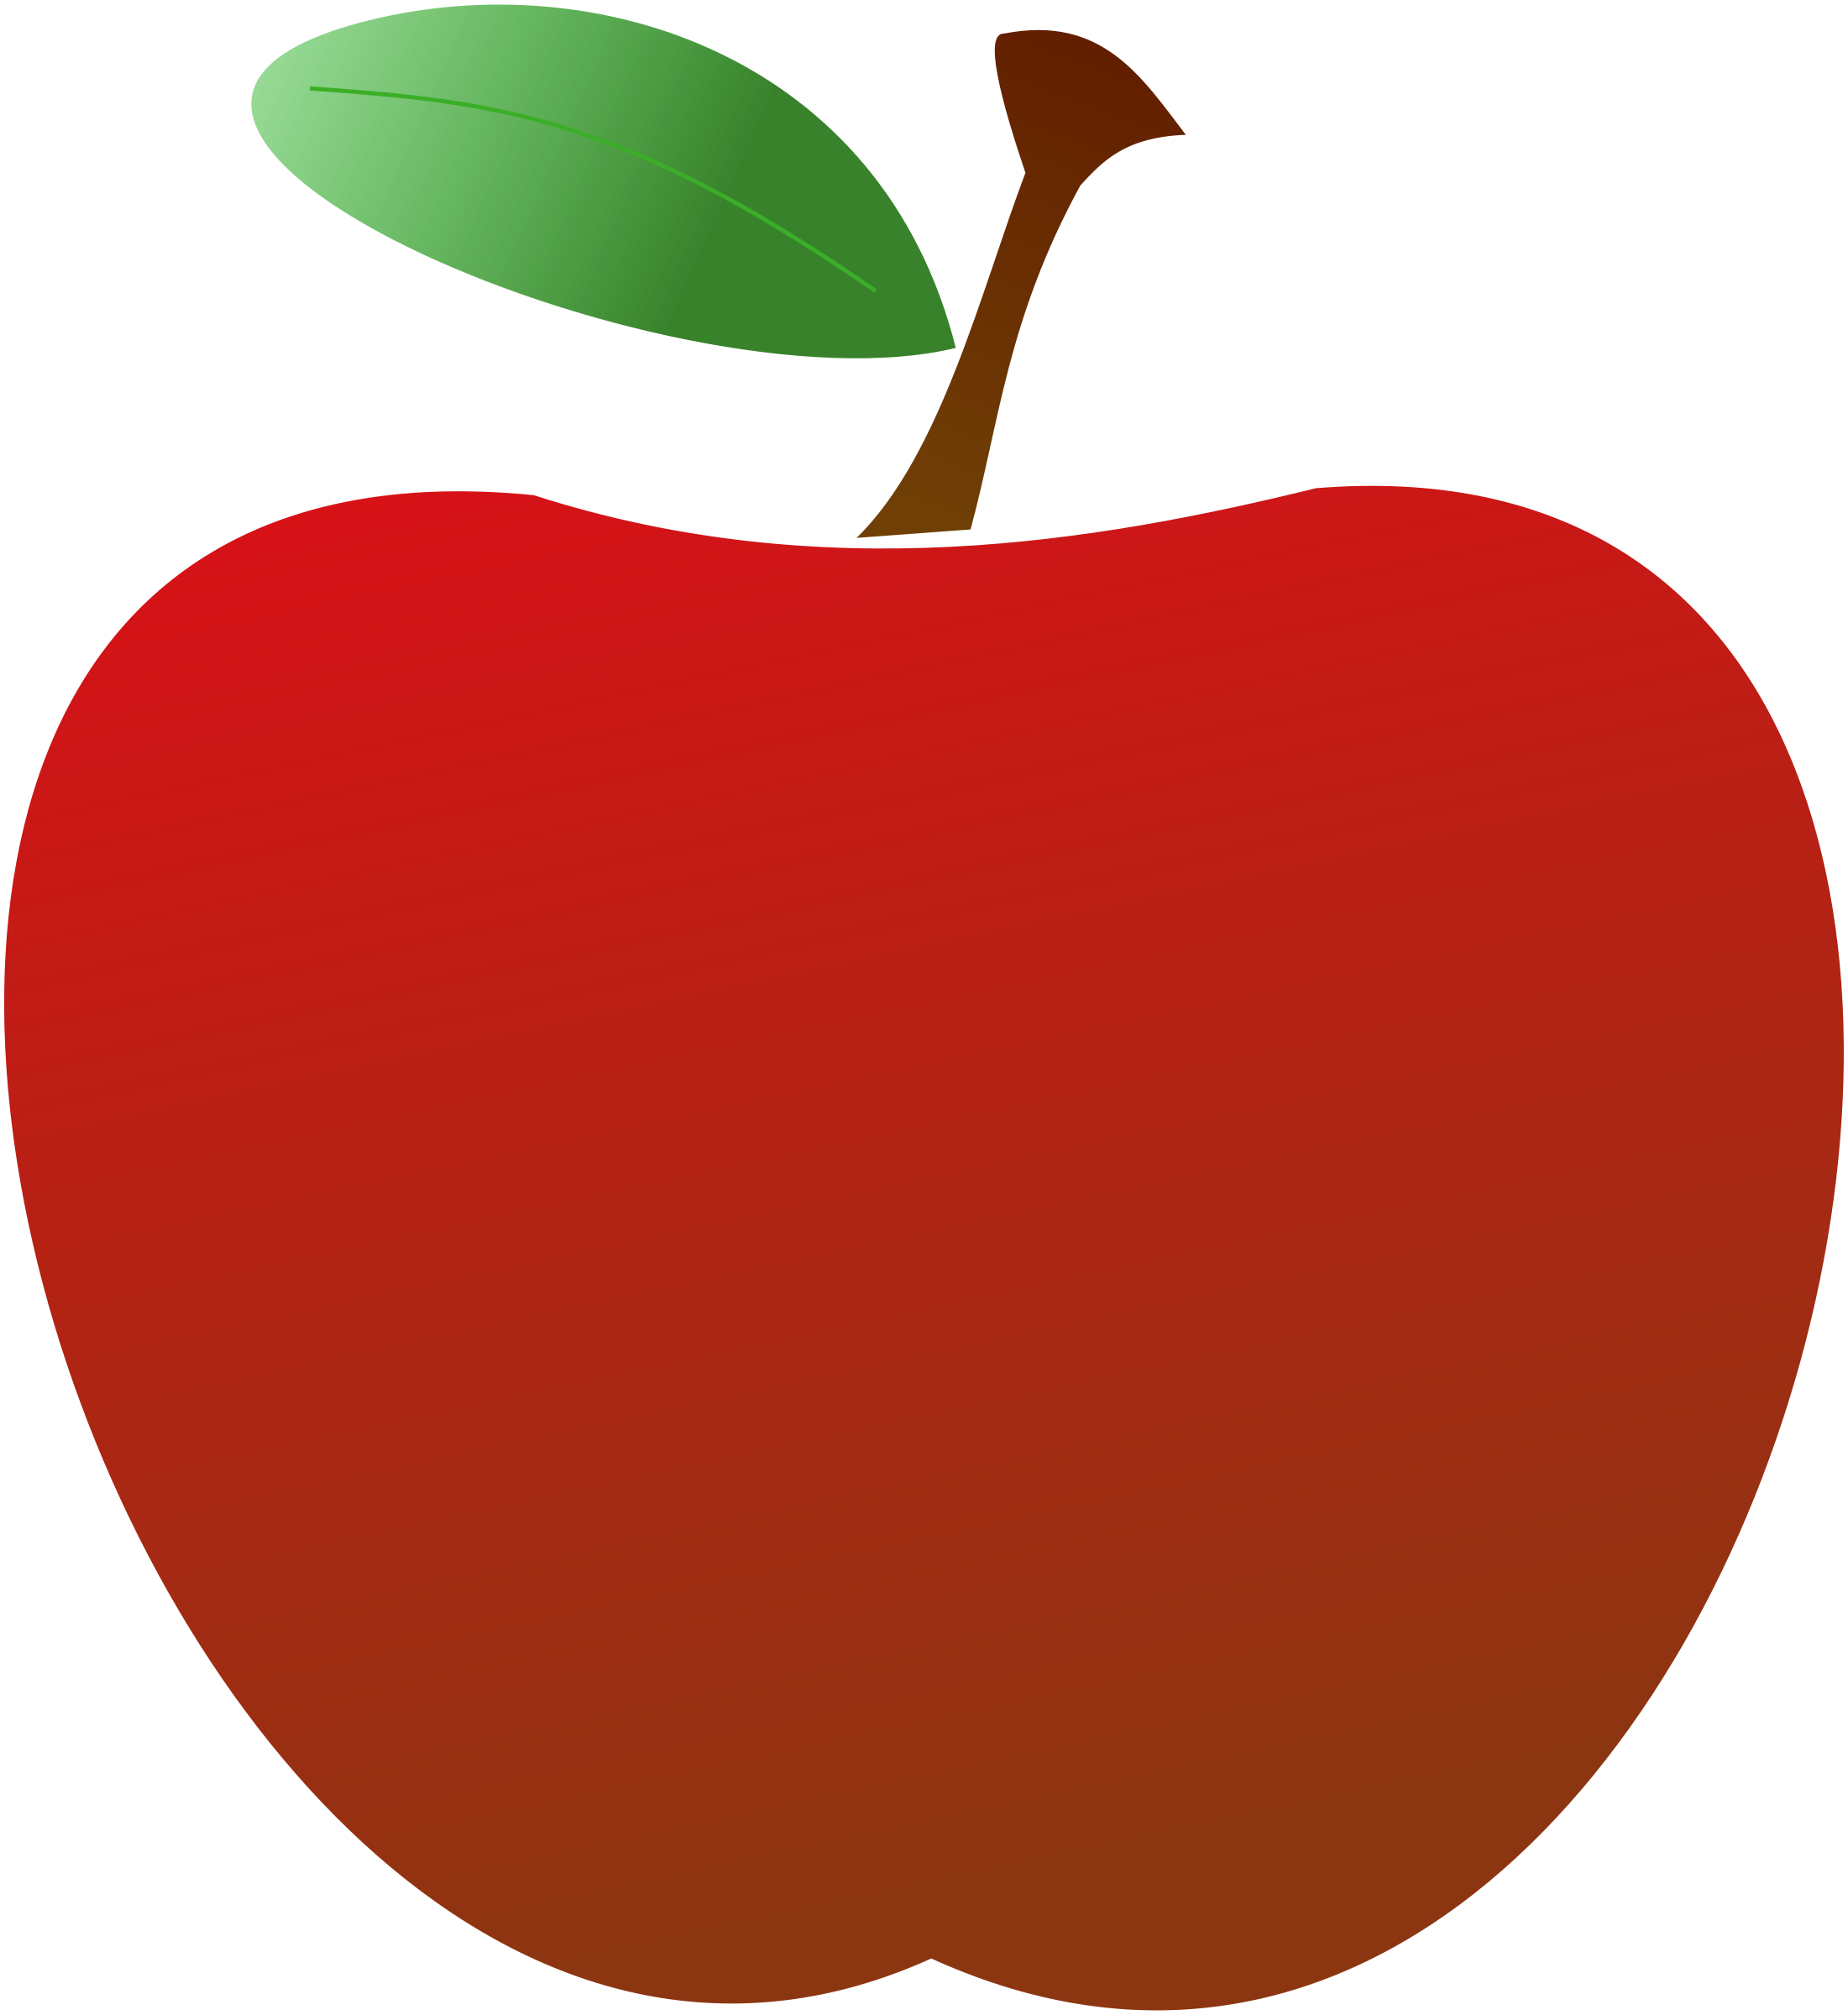 Teal apple clipart image stock Teacher Apple Clipart | Clipart Panda - Free Clipart Images ... image stock